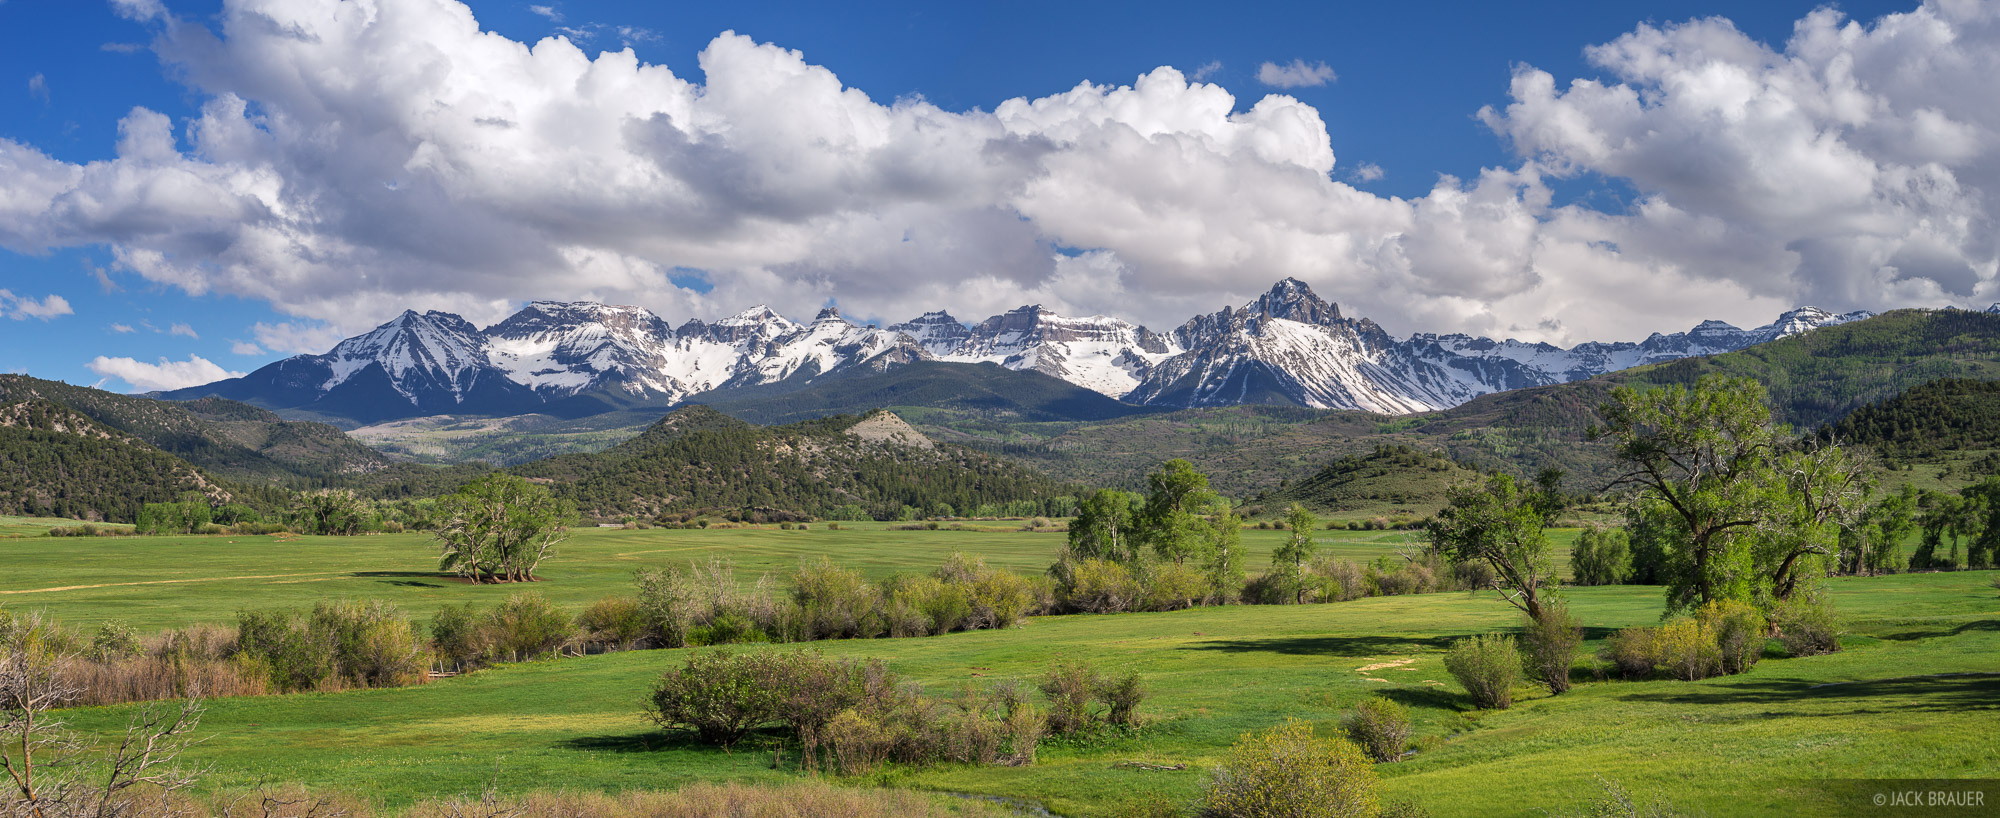 Mt. Sneffels, Double RL, ranch, Ridgway, Colorado,San Juan Mountains,Sneffels Range, panorama, photo